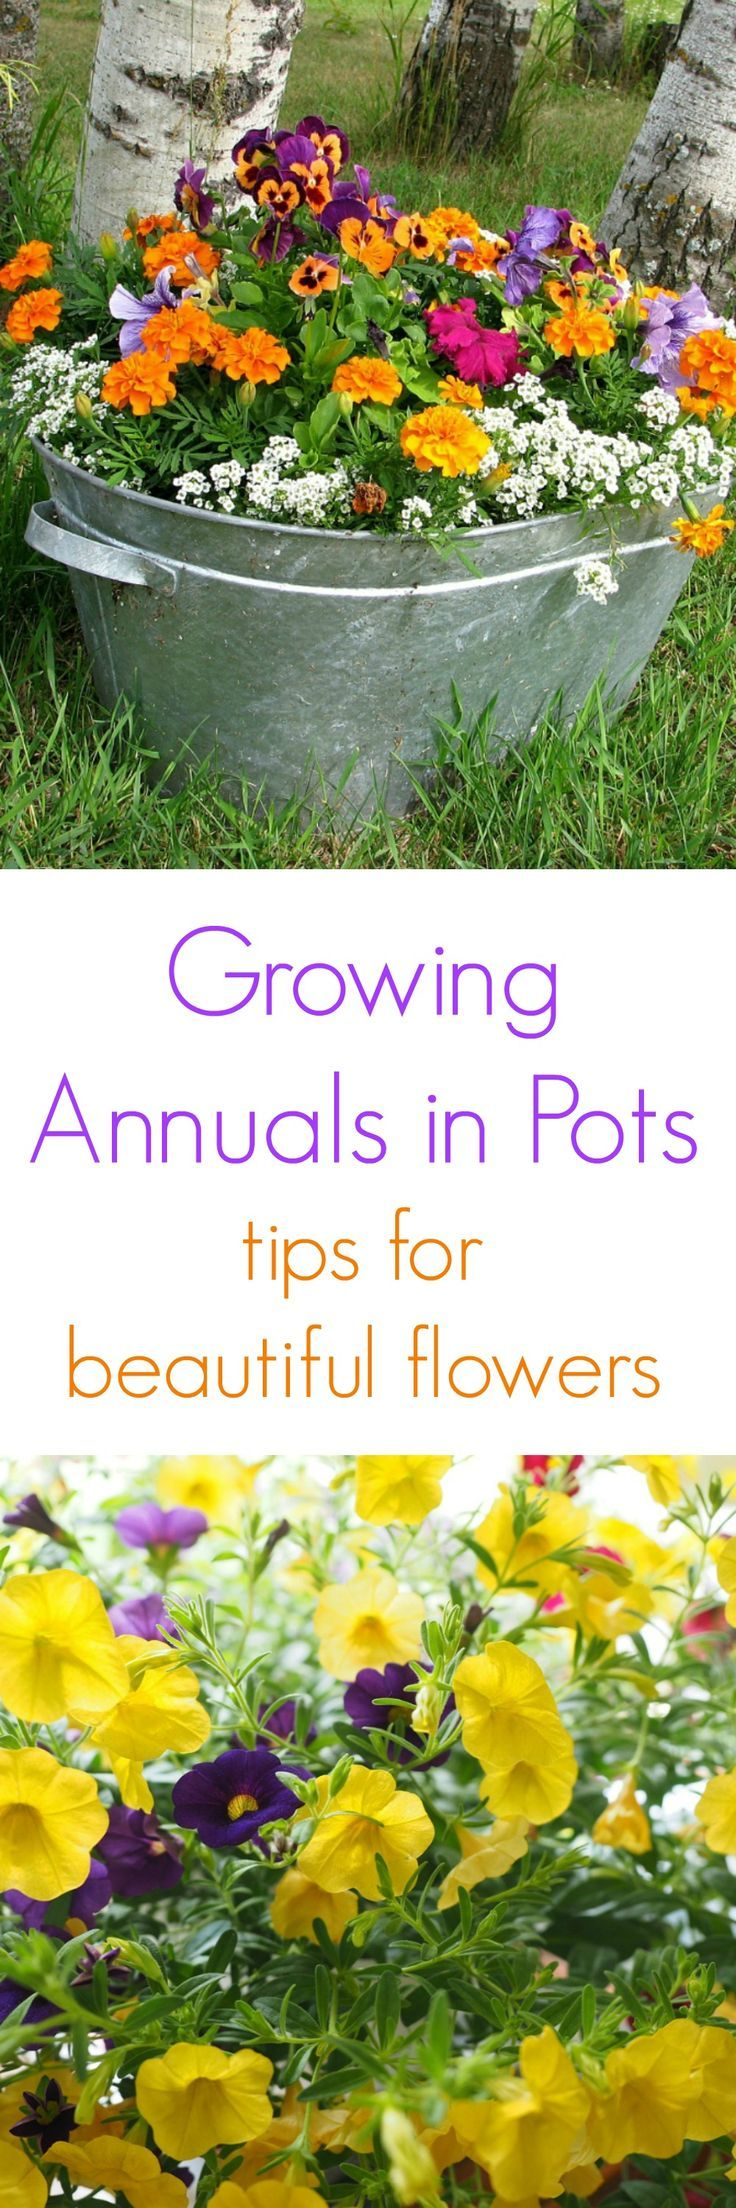 12 Best Annuals Images On Pinterest Container Garden Flower Boxes